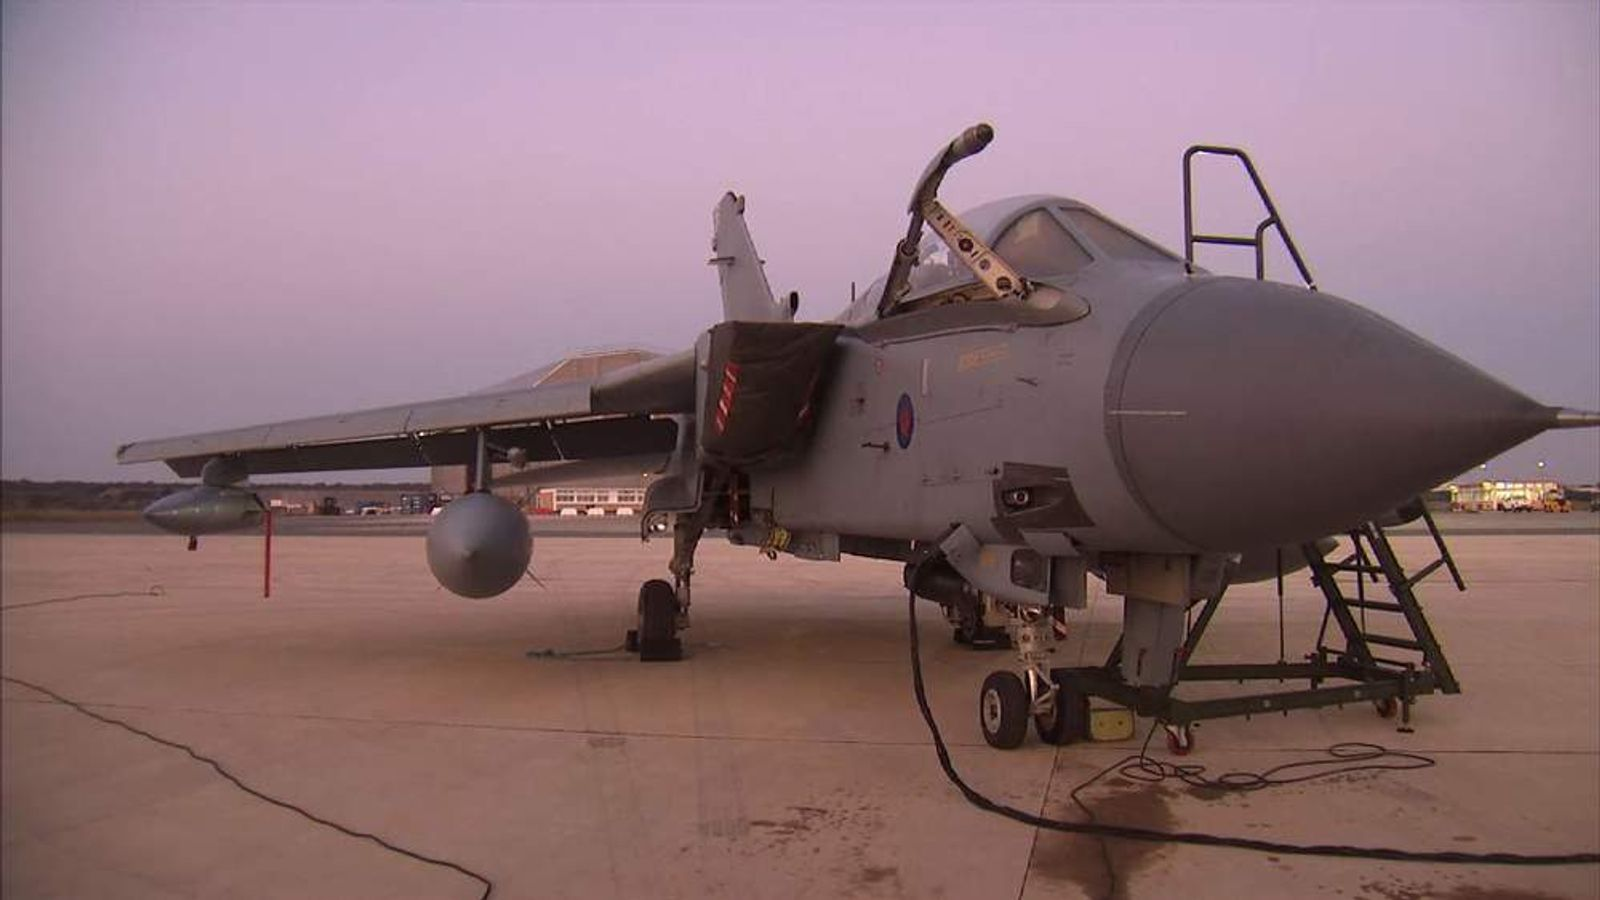 A Tornado jet at RAF Akrotiri in Cyprus